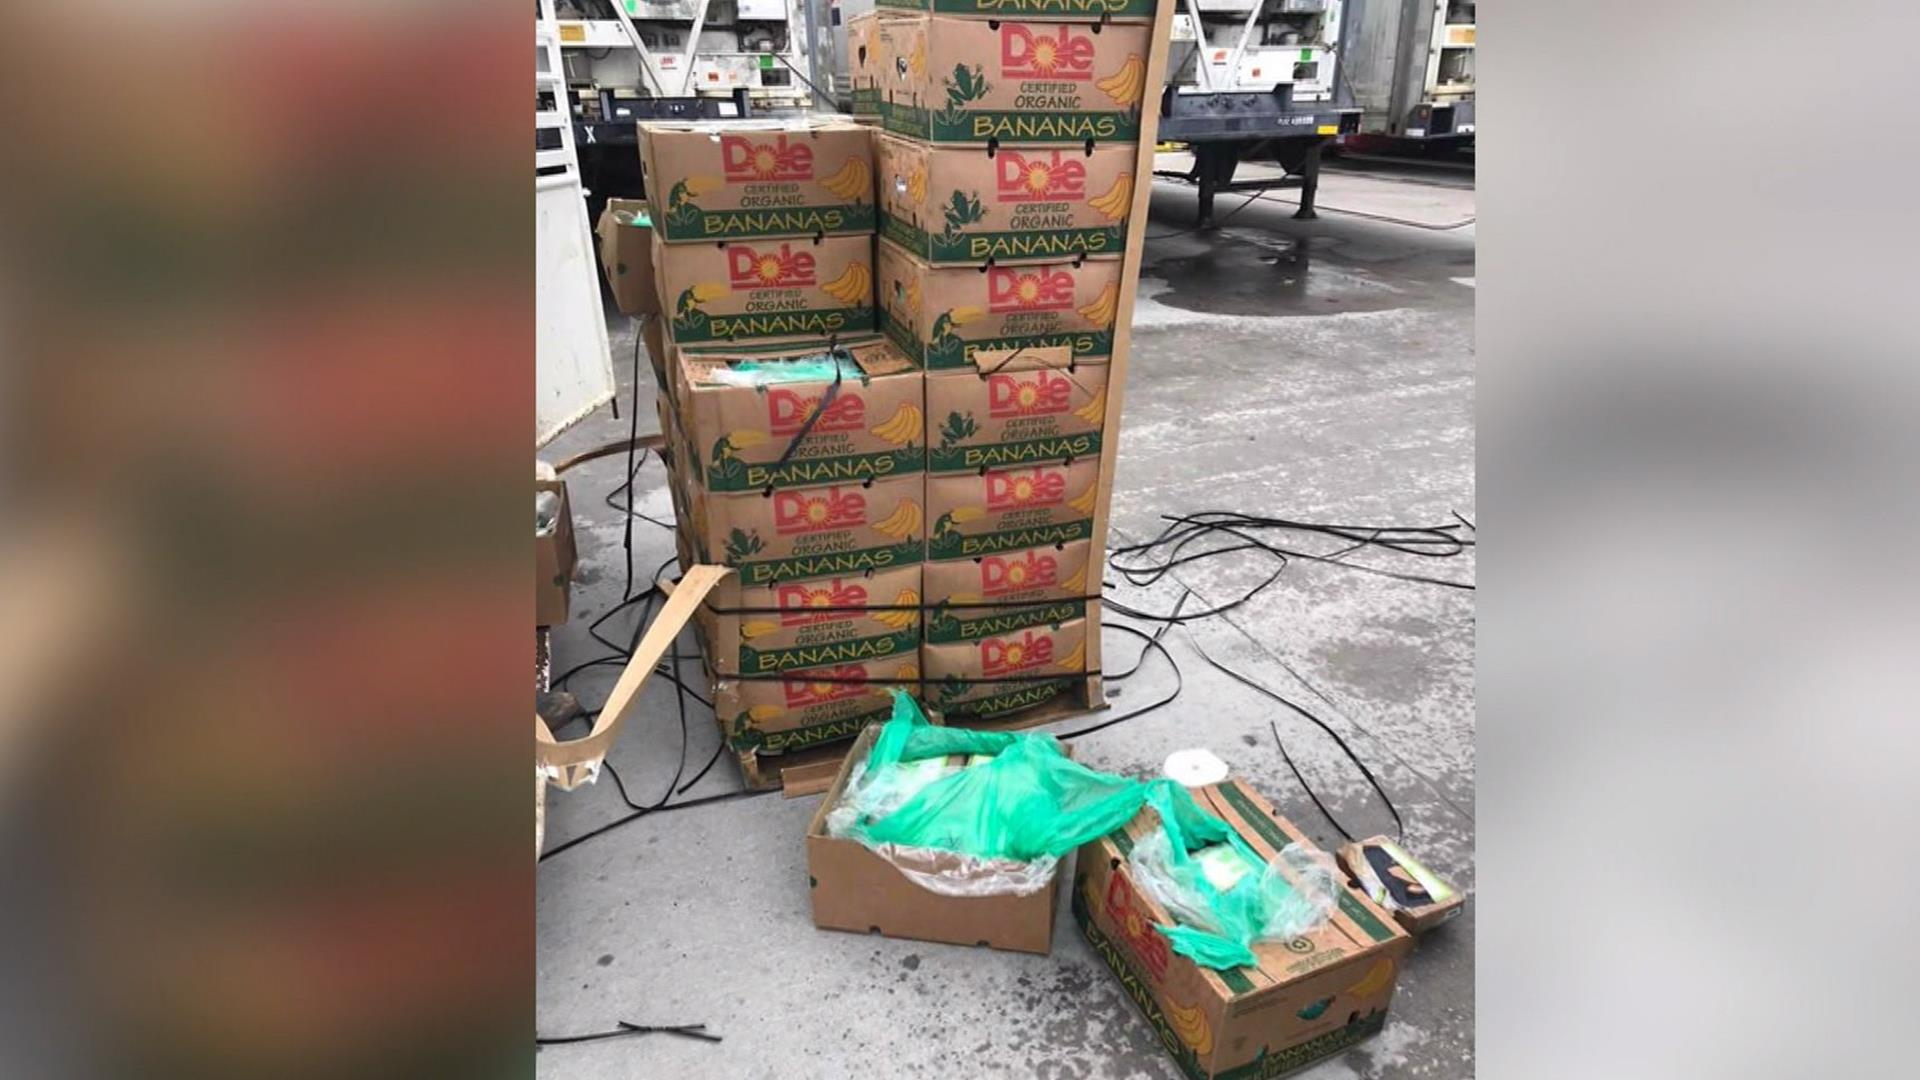 Meuble Torres Cocaine Found In Shipment Of Bananas Donated To Texas Prison